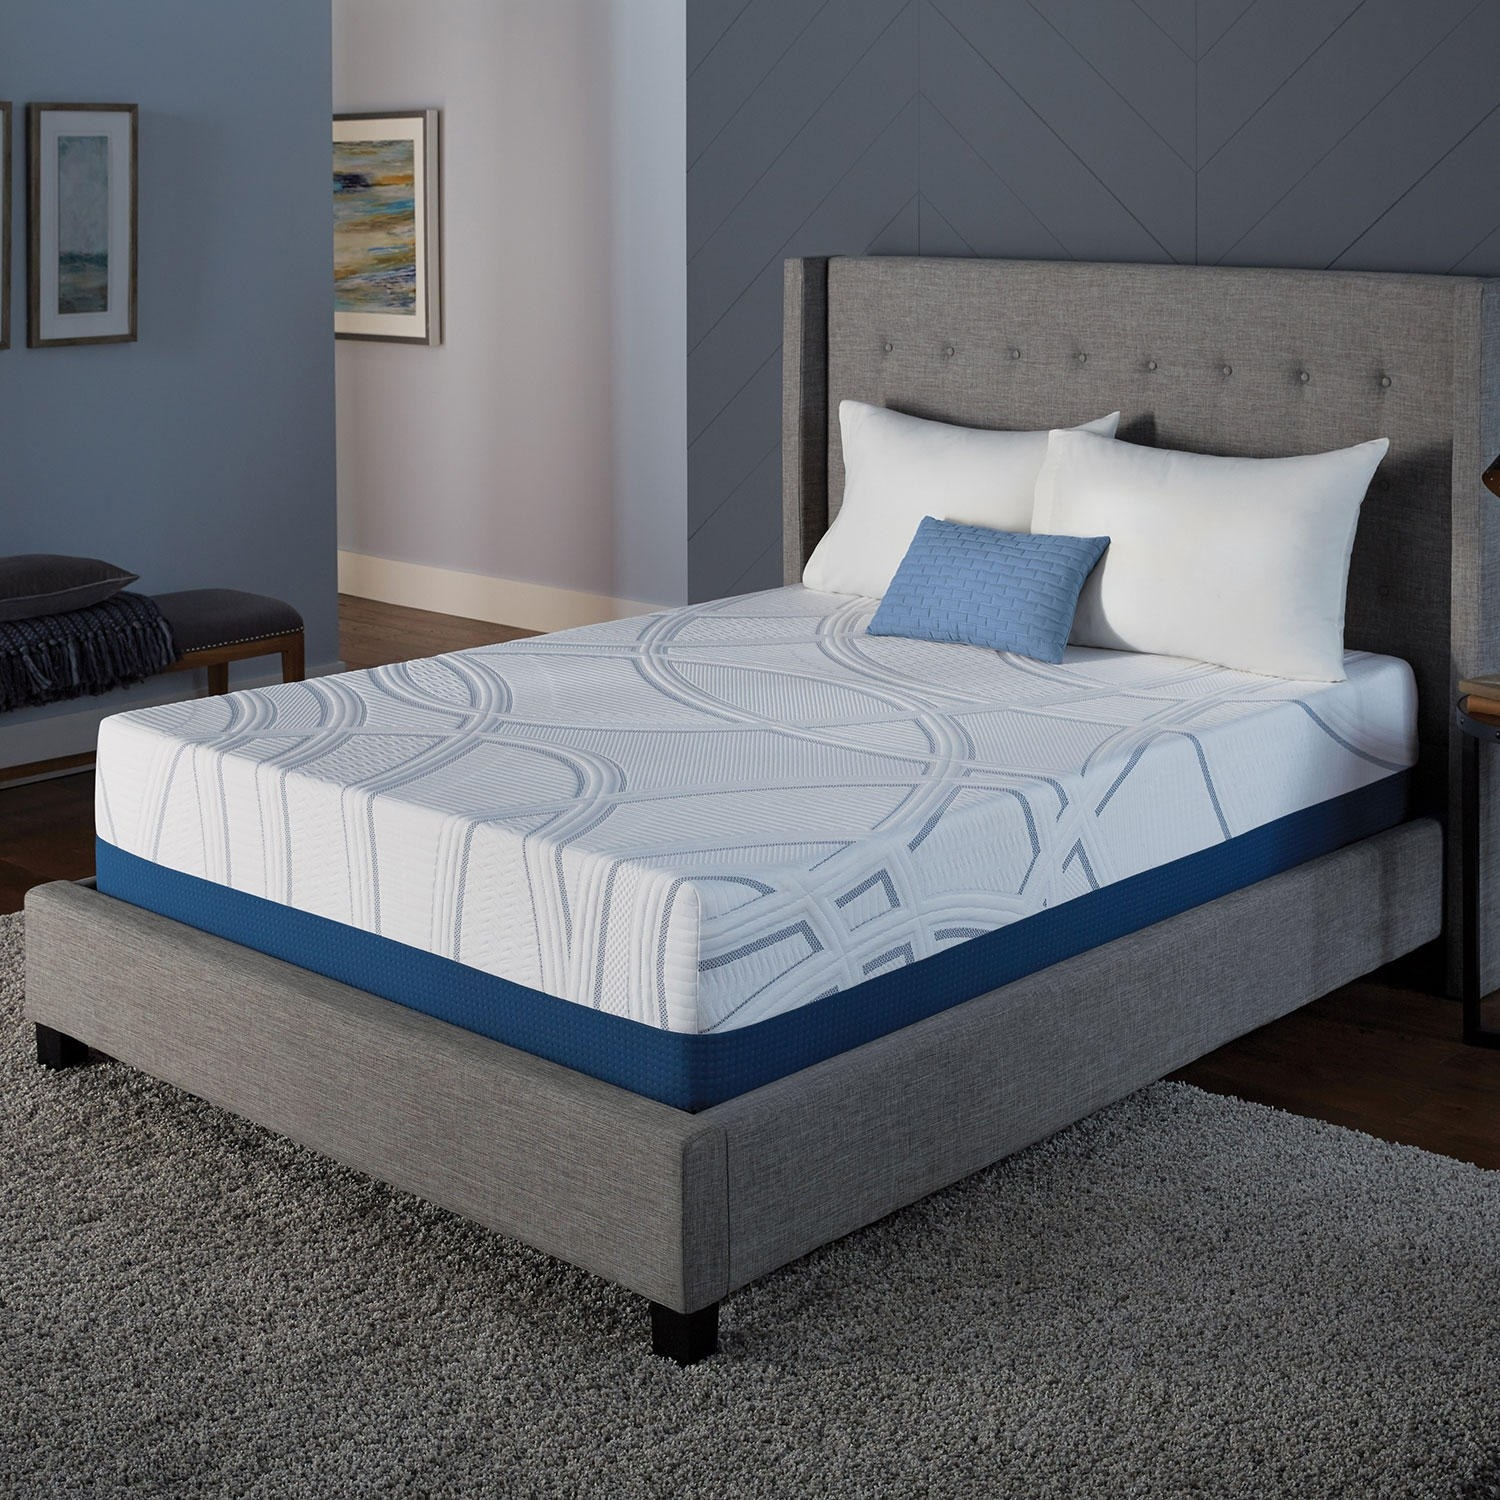 The mattress, set on top of a gray bed frame